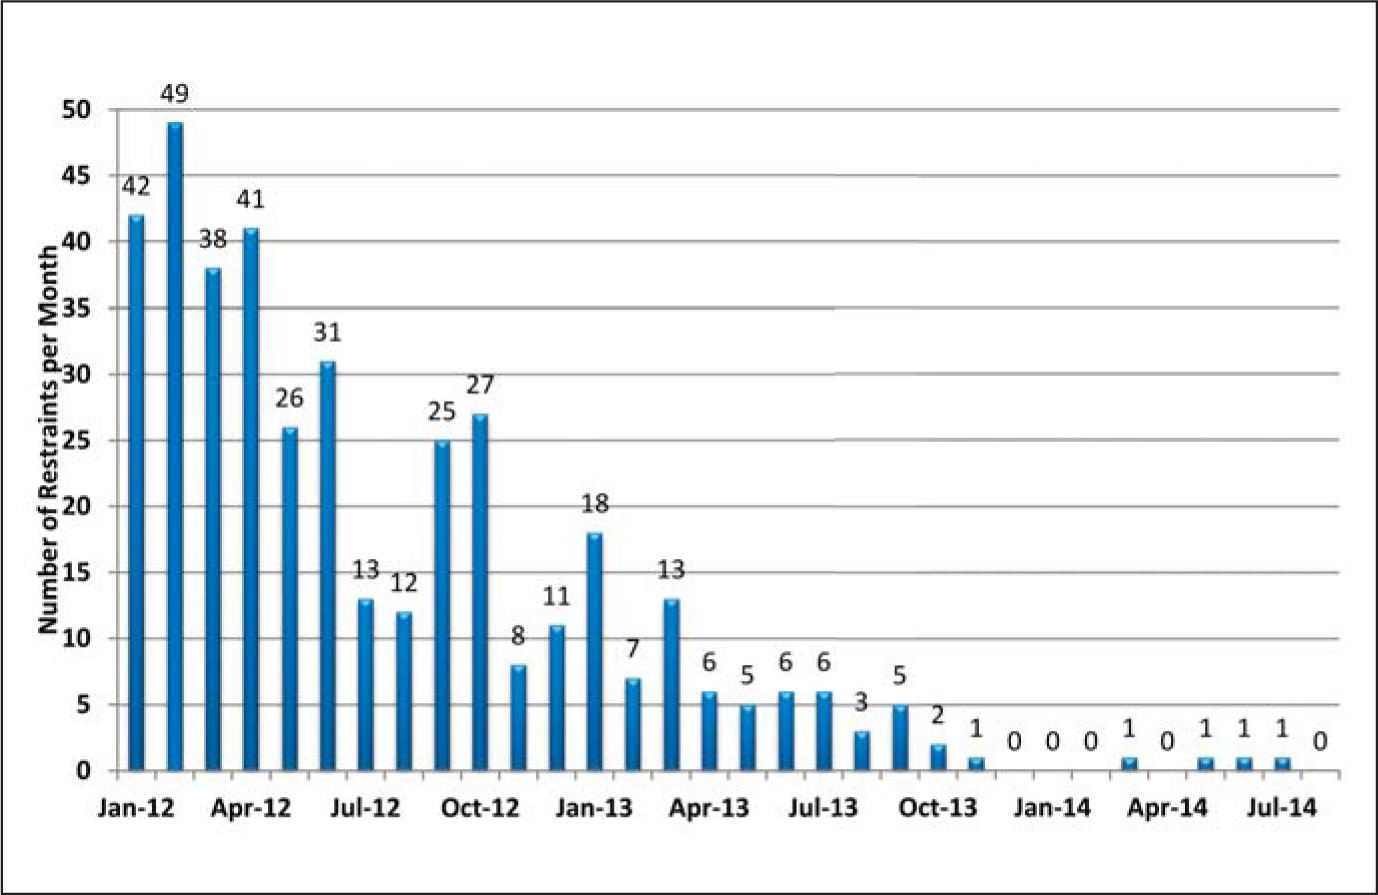 Youth Development Institute number of restraints per month, beginning January 2012.